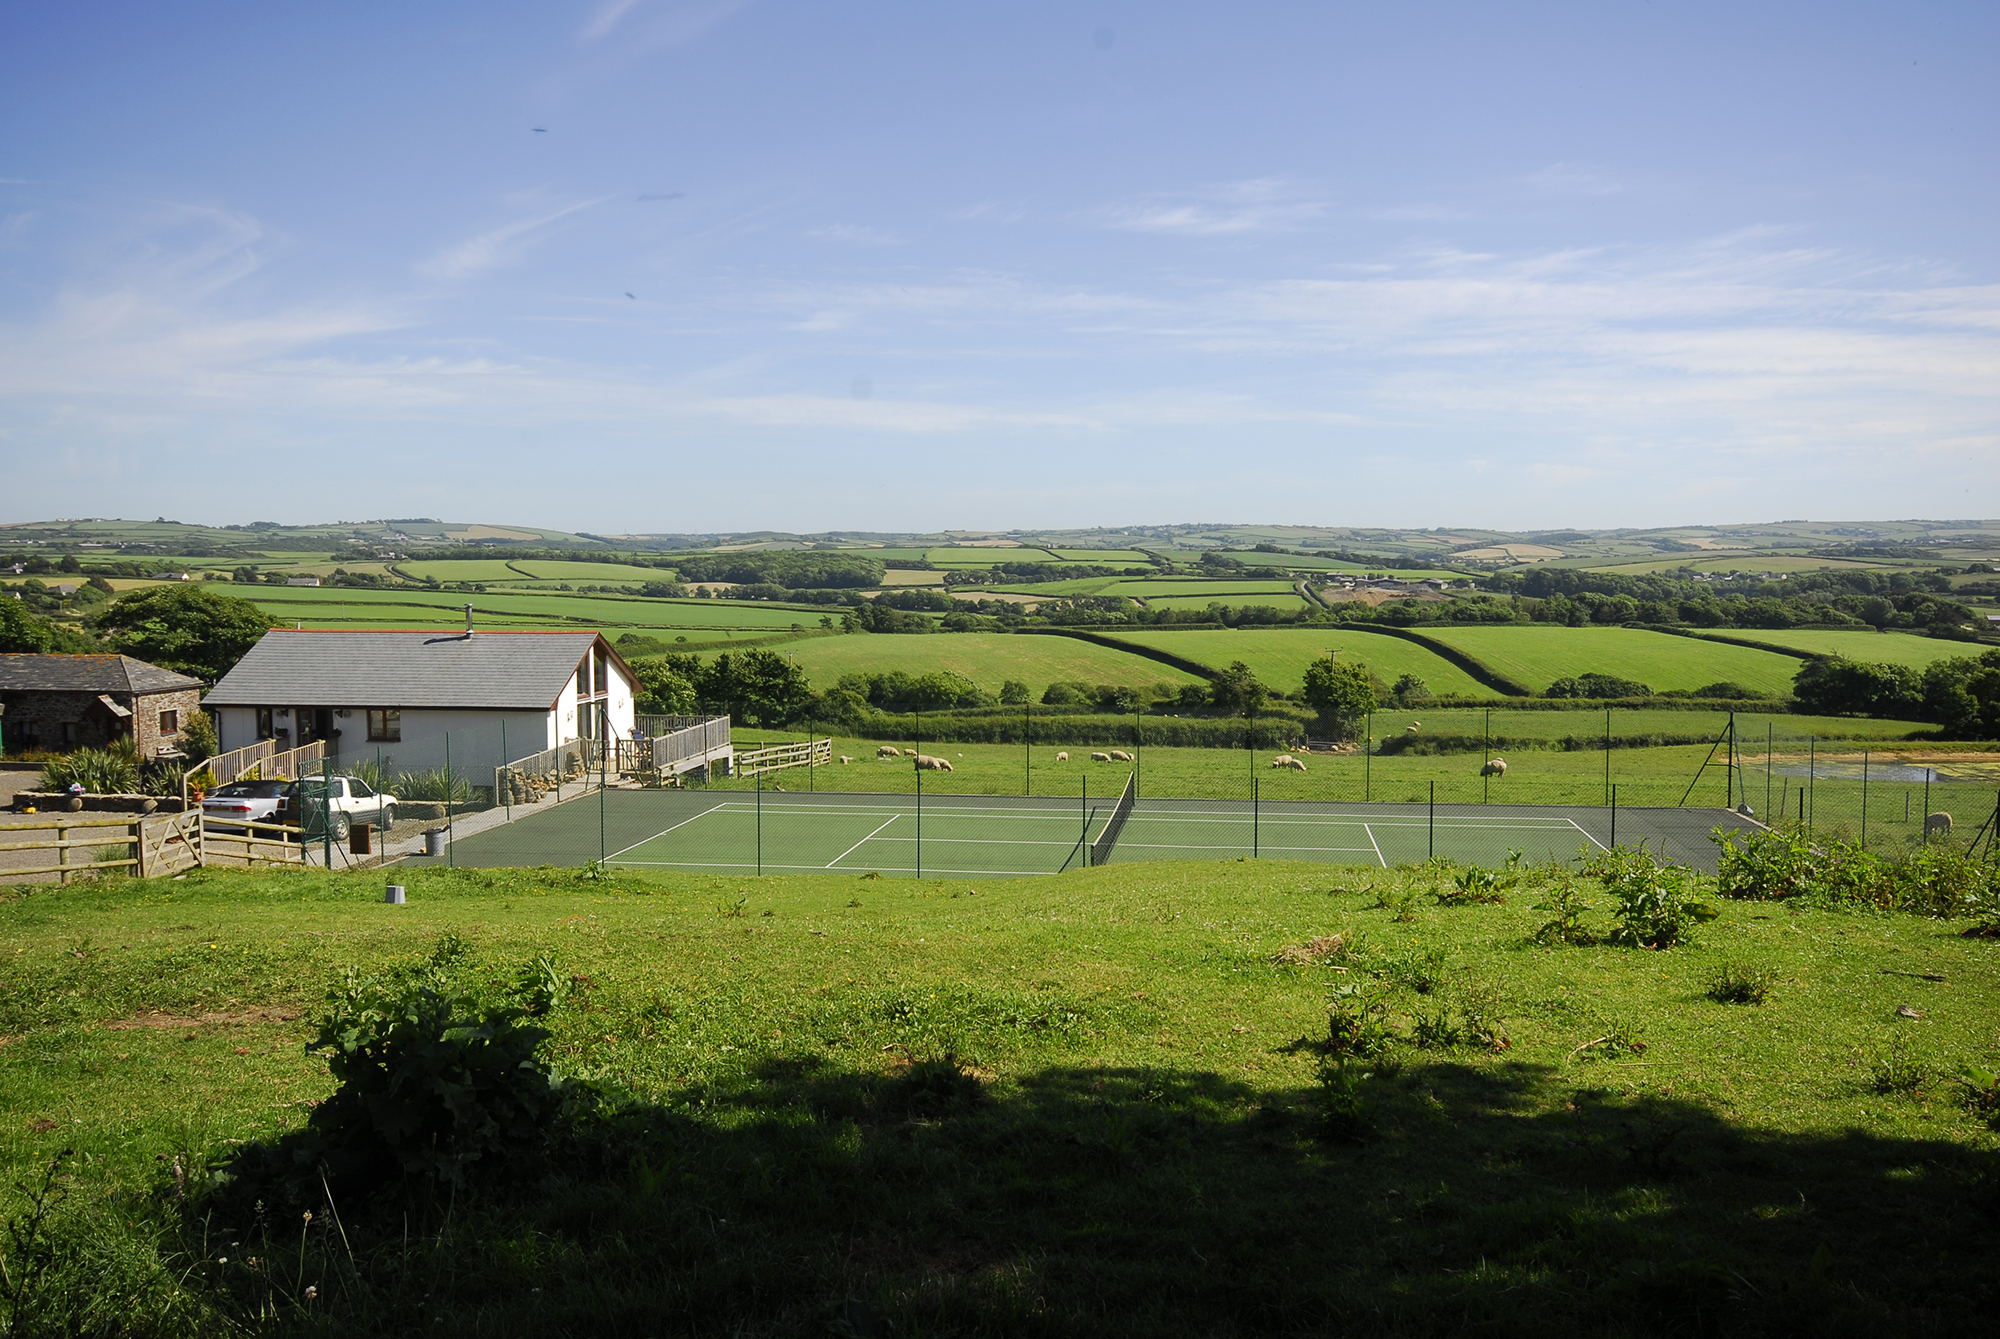 Take in stunning views on site over the countryside towards the coast.